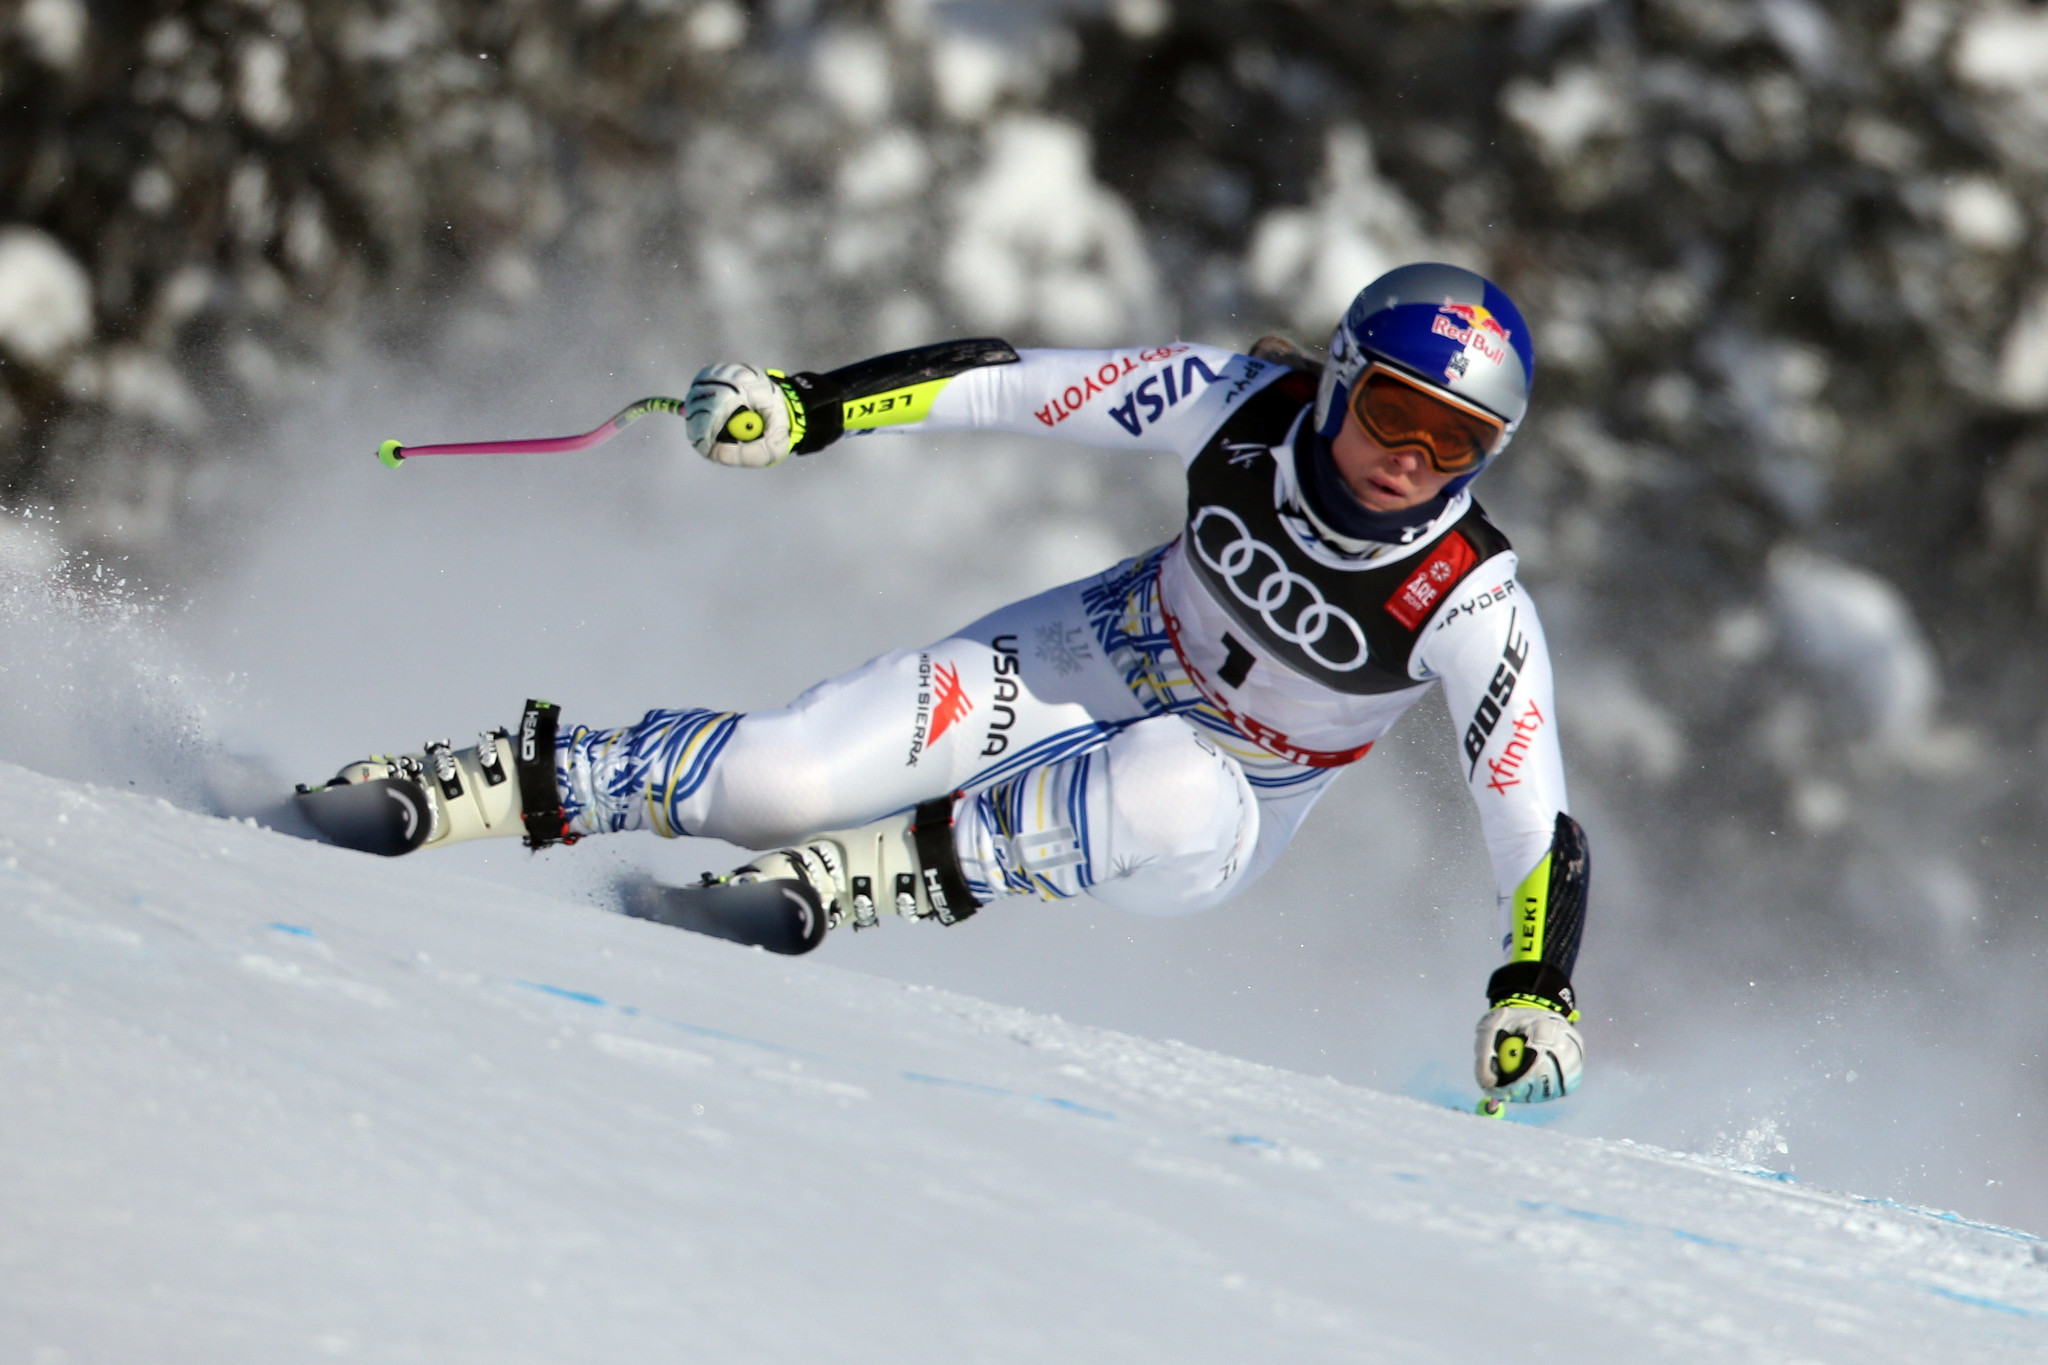 Lindsey Vonn finished 11th in the downhill training event prior to the FIS Alpine World Ski Championships in Åre, which are starting tomorrow ©Getty Images